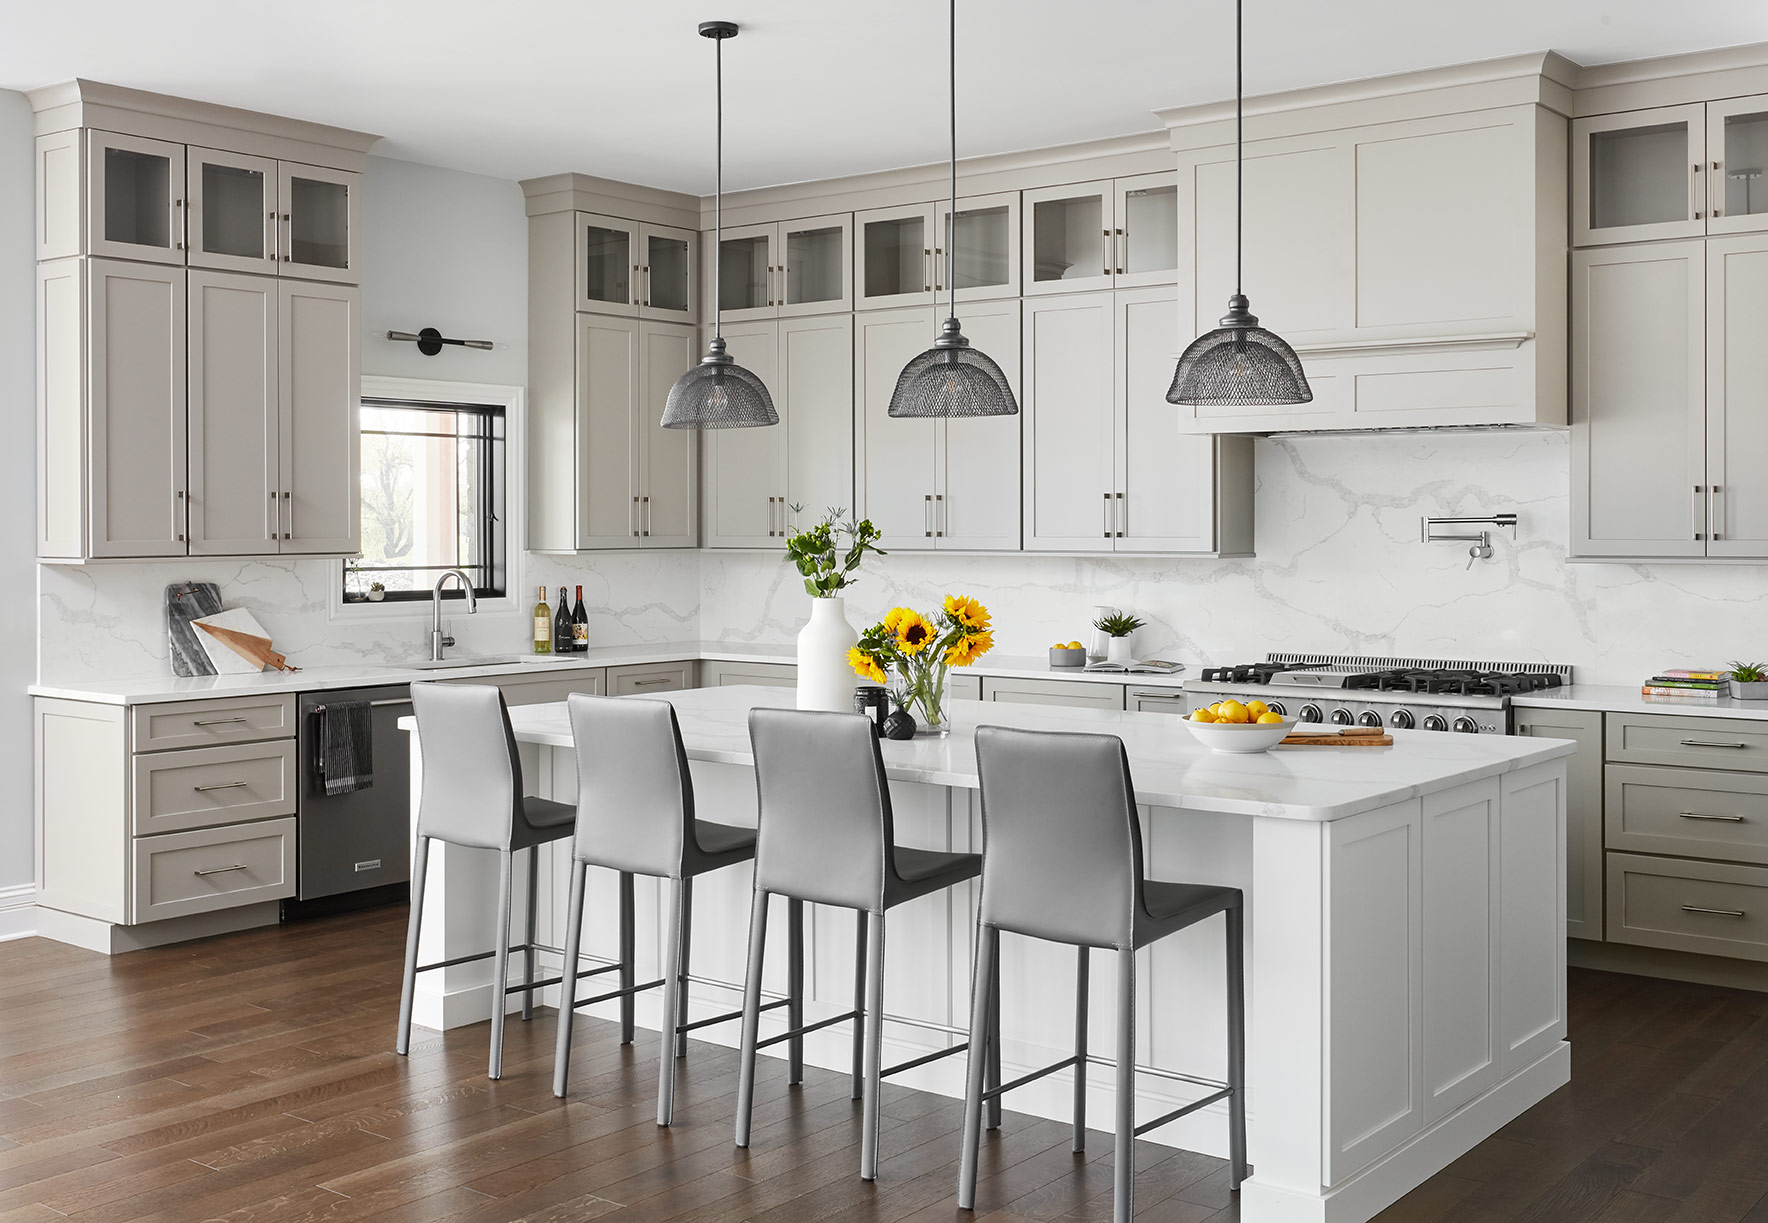 The kitchen was made up of warm gray Shaker style cabinets, carried to the ceiling with glass-door cabinets at the top. The oversized island is a brighter white finish to add some contrast. We carried the marble-looking quartz countertops up the backsplash to add a seamless look and to mitigate any clutter, keeping the design fresh and clean.